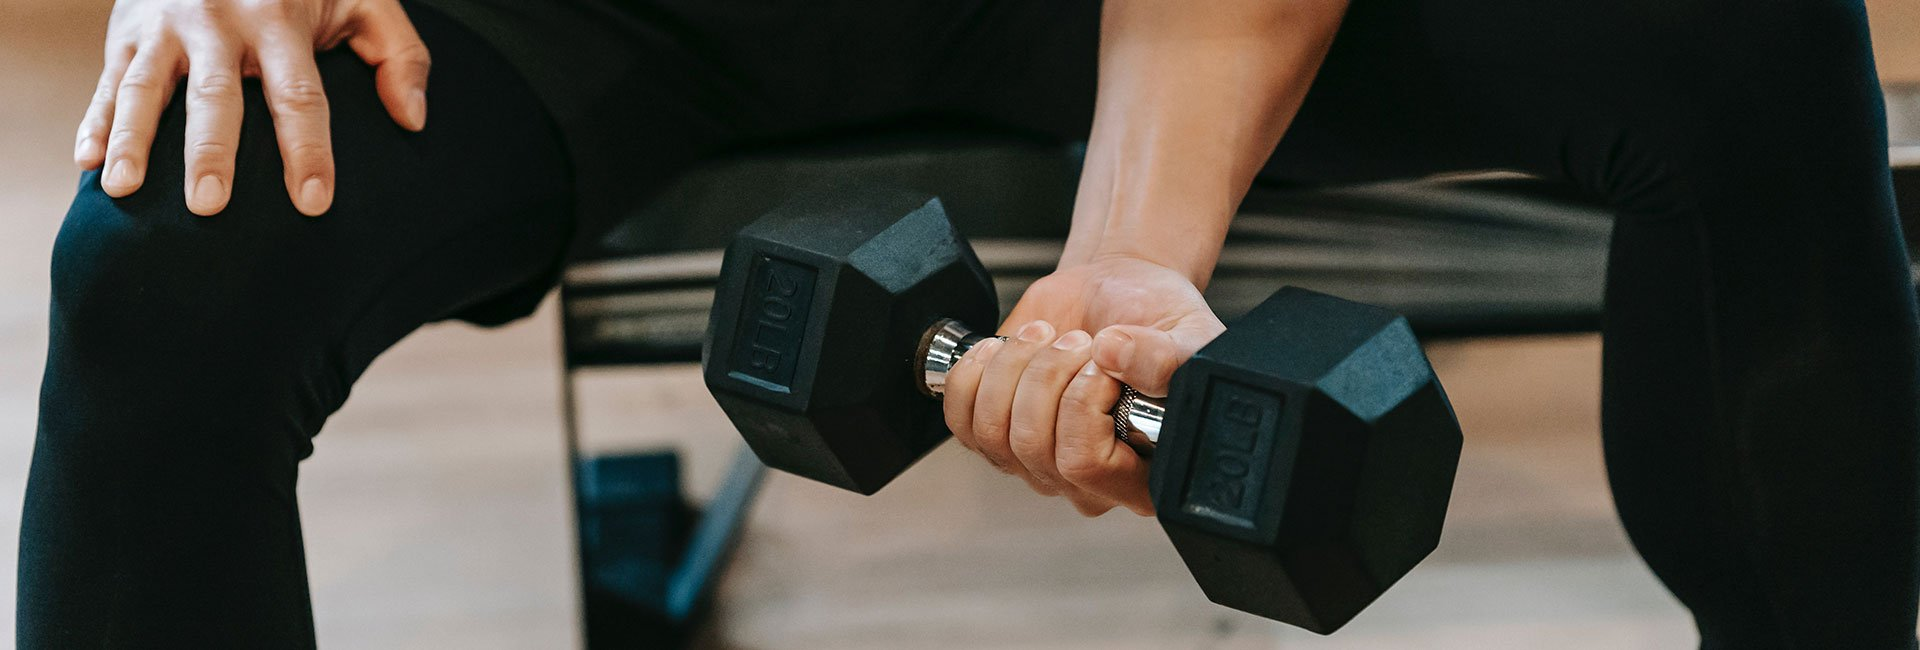 EXERCISES WITH DUMBBELLS AND A BENCH